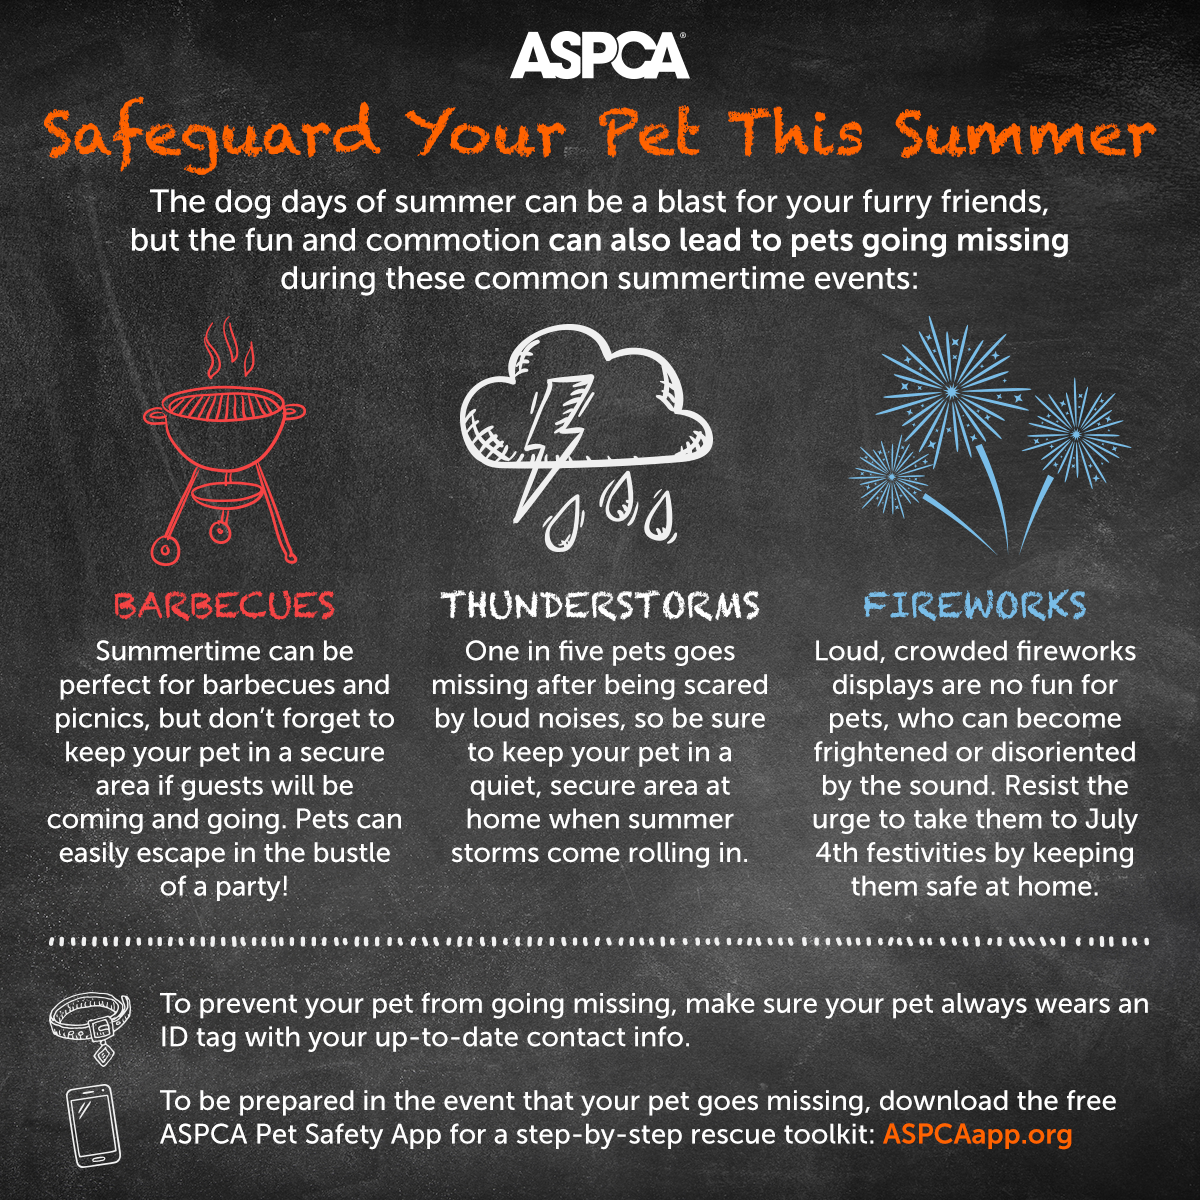 ASPCA Graphic: Safeguard Your Pet This Summer